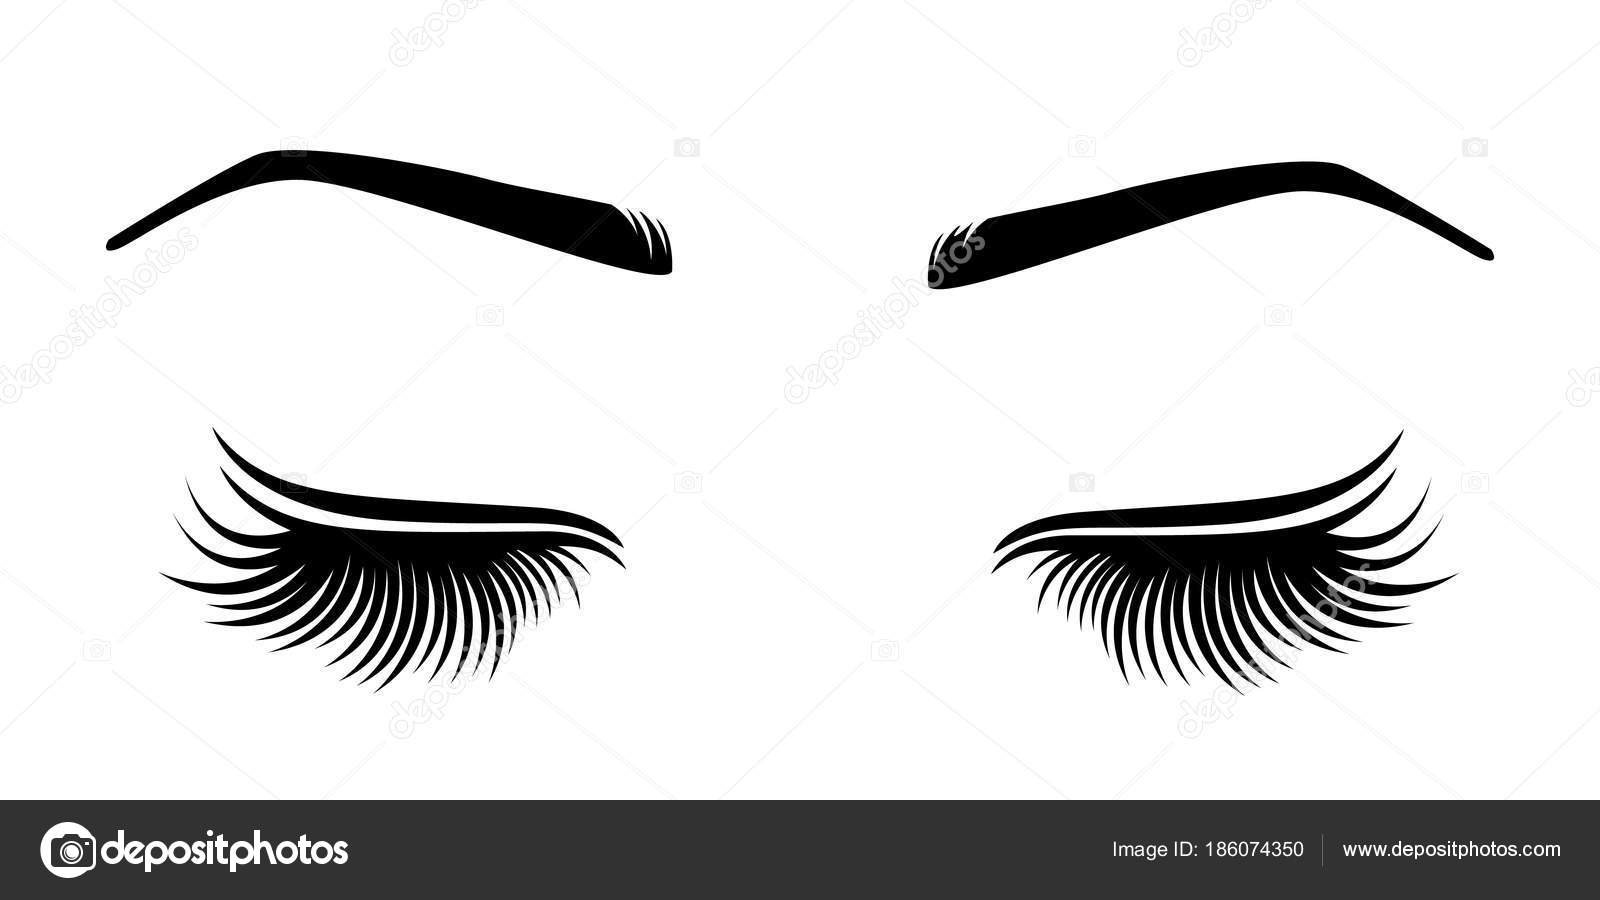 ea8caab5455 Vector illustration of lashes and brow. — Stock Vector © Volchonok ...